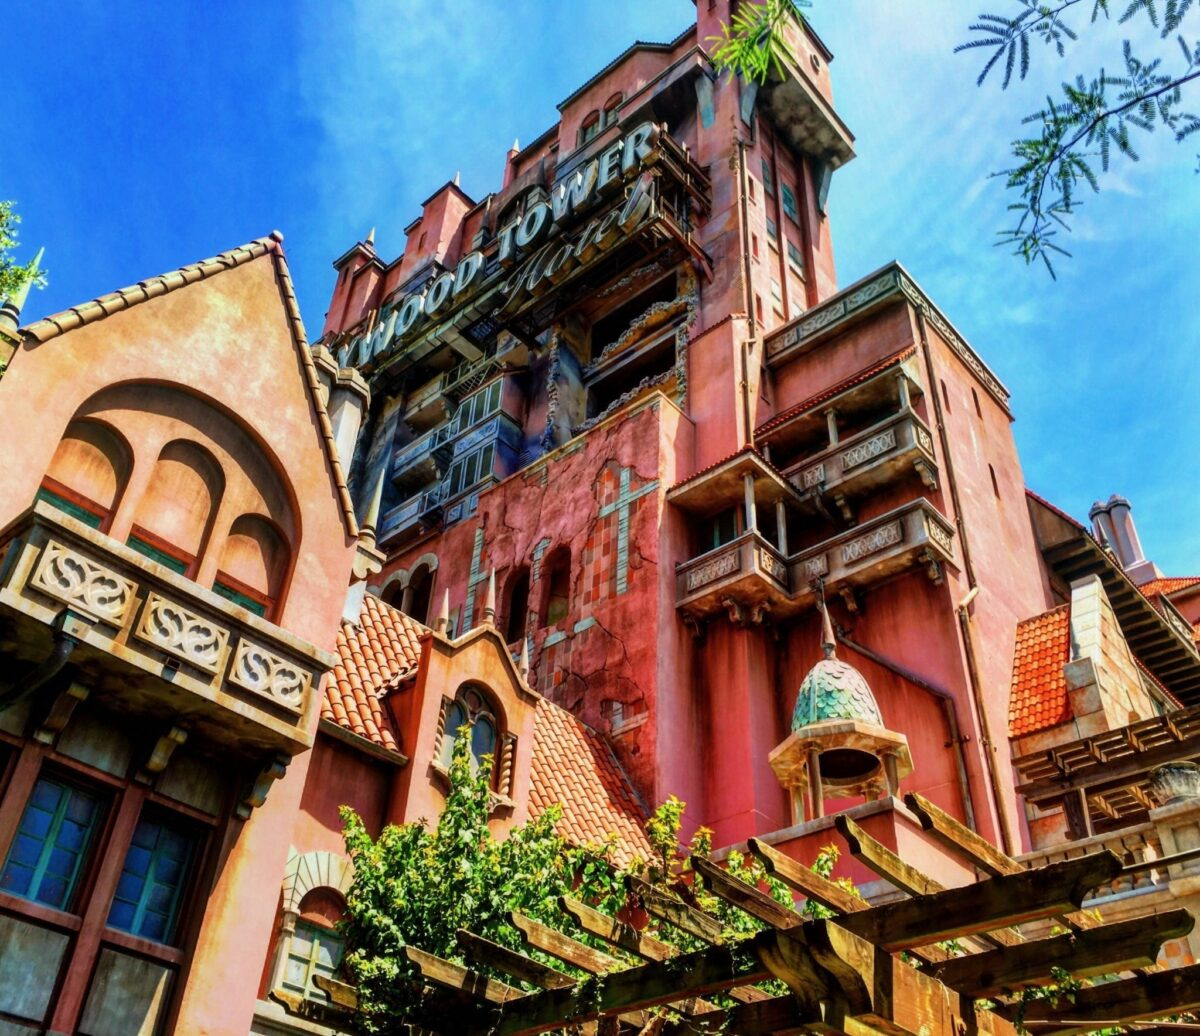 Hollywood Tower Hotel – Porcelain In The Library